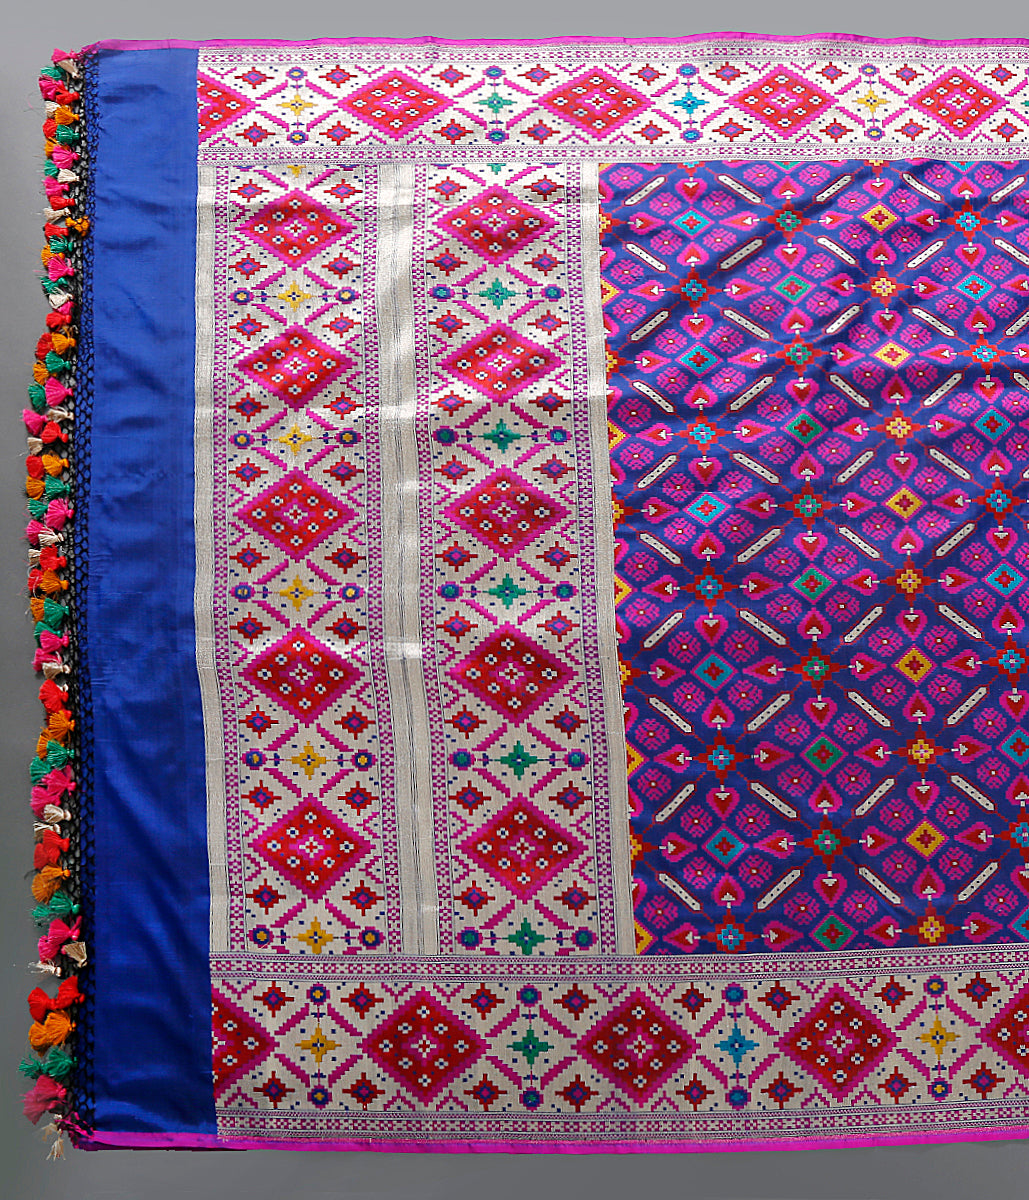 Handwoven Blue Banarasi Patola dupatta with meenakari and rich meenakari borders